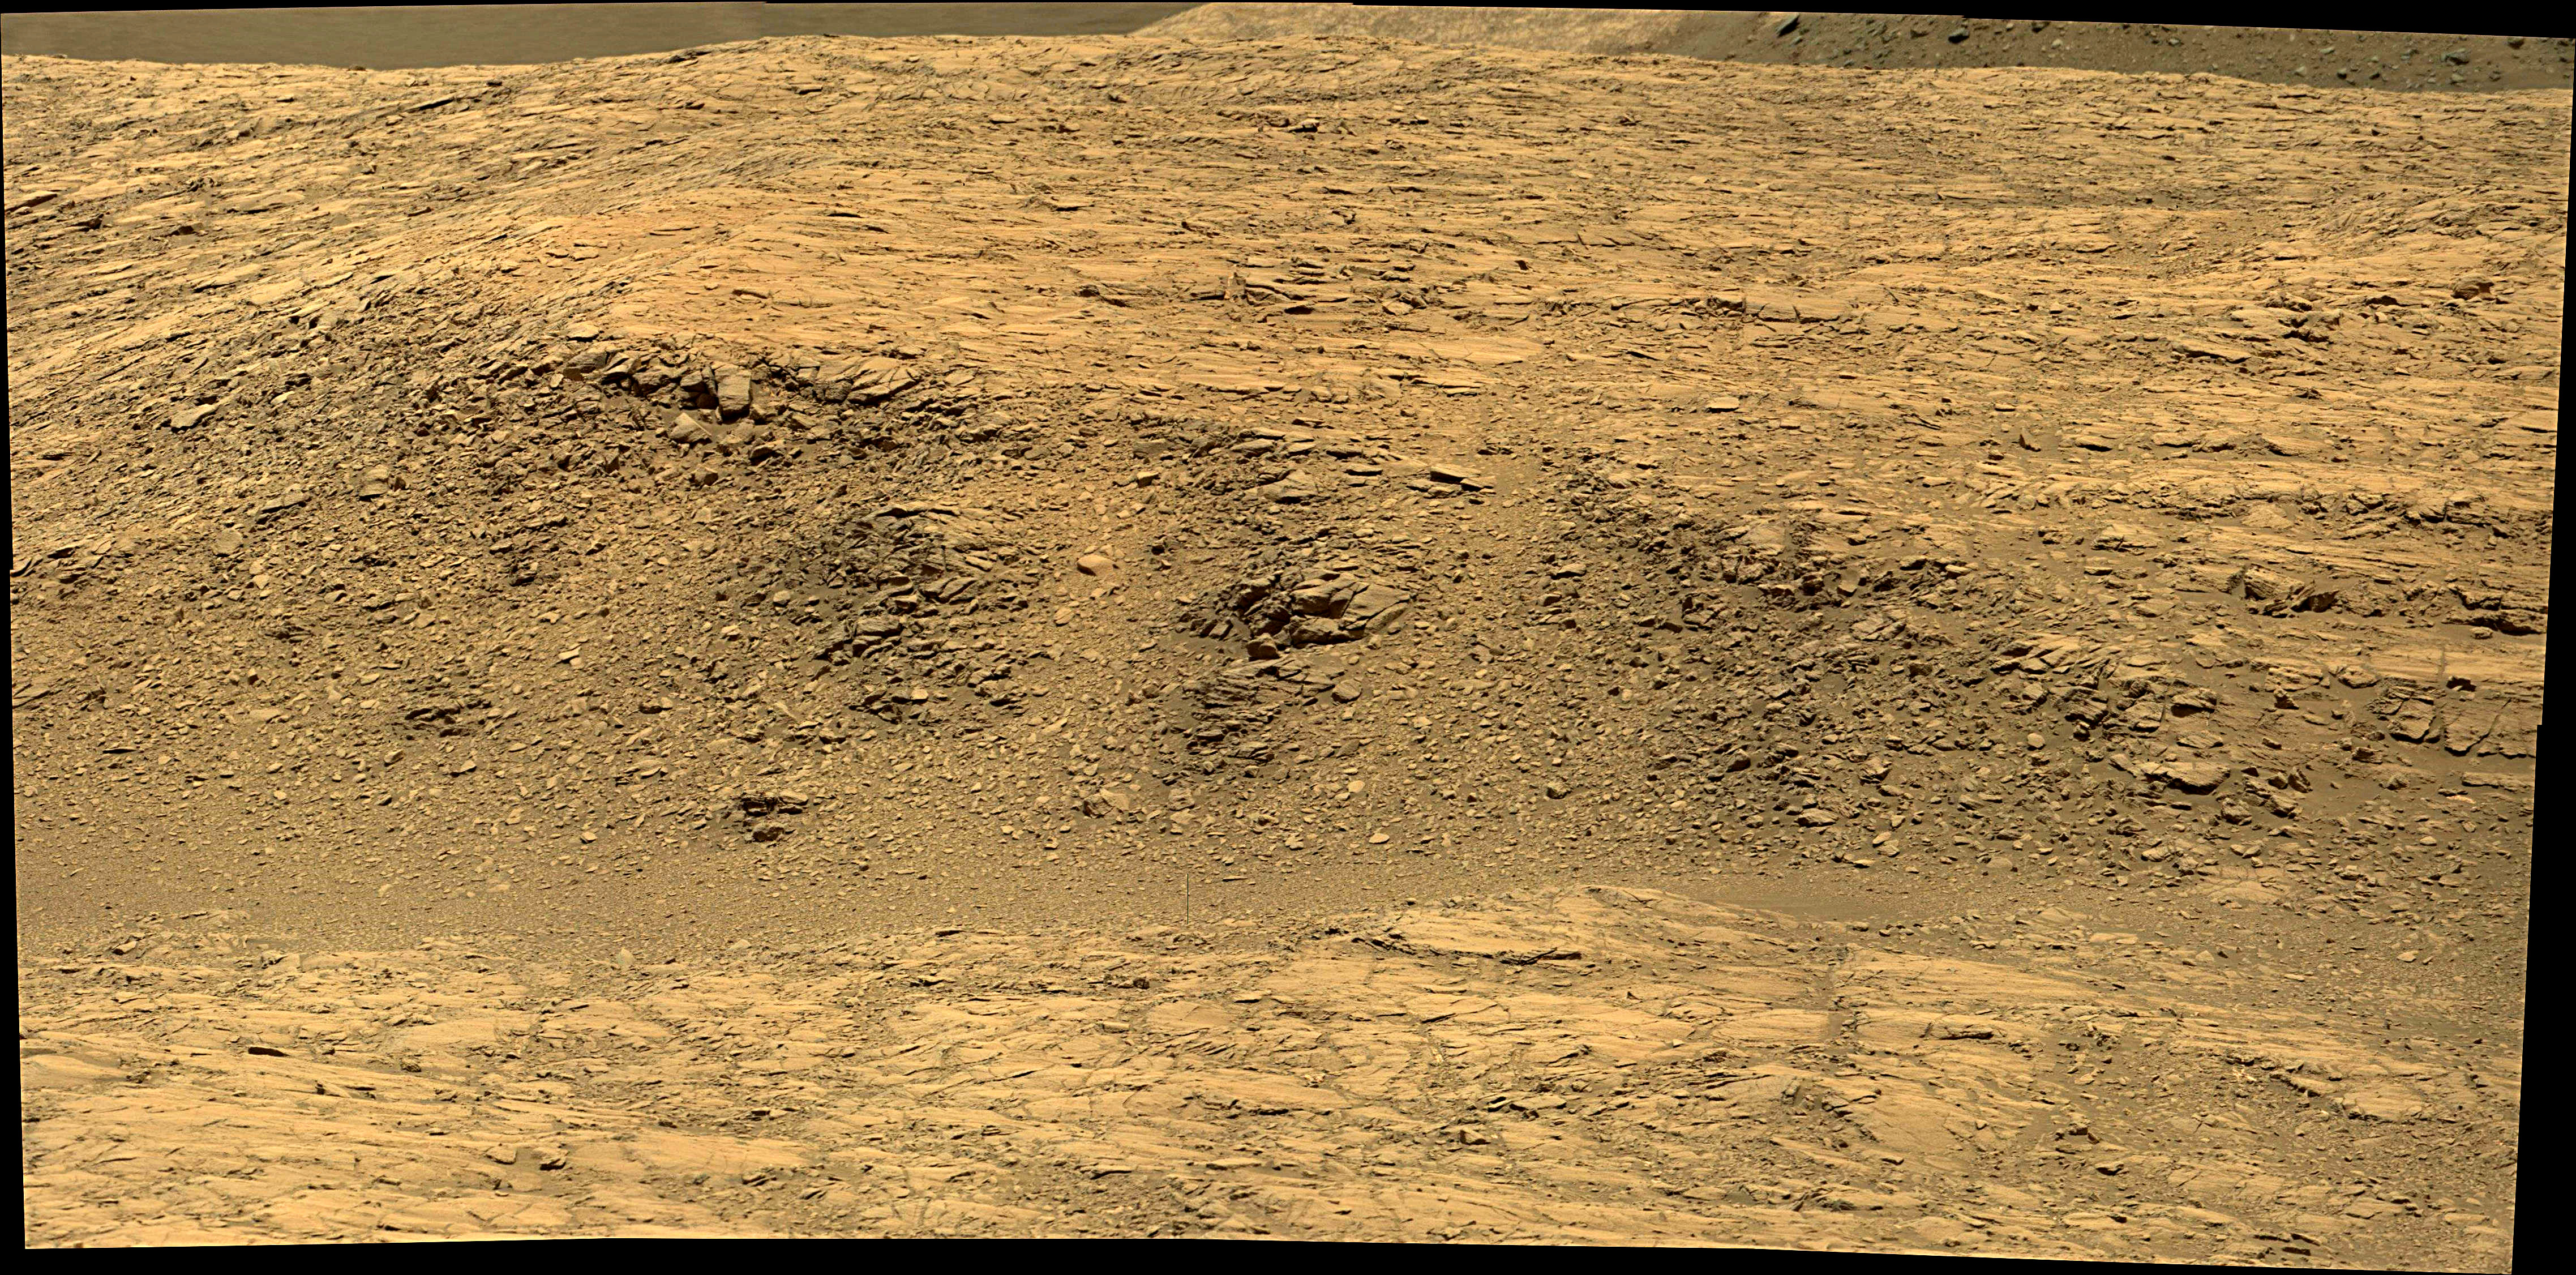 Curiosity Rover Composite View 1e of Mars Sol 1398 – Click to enlarge